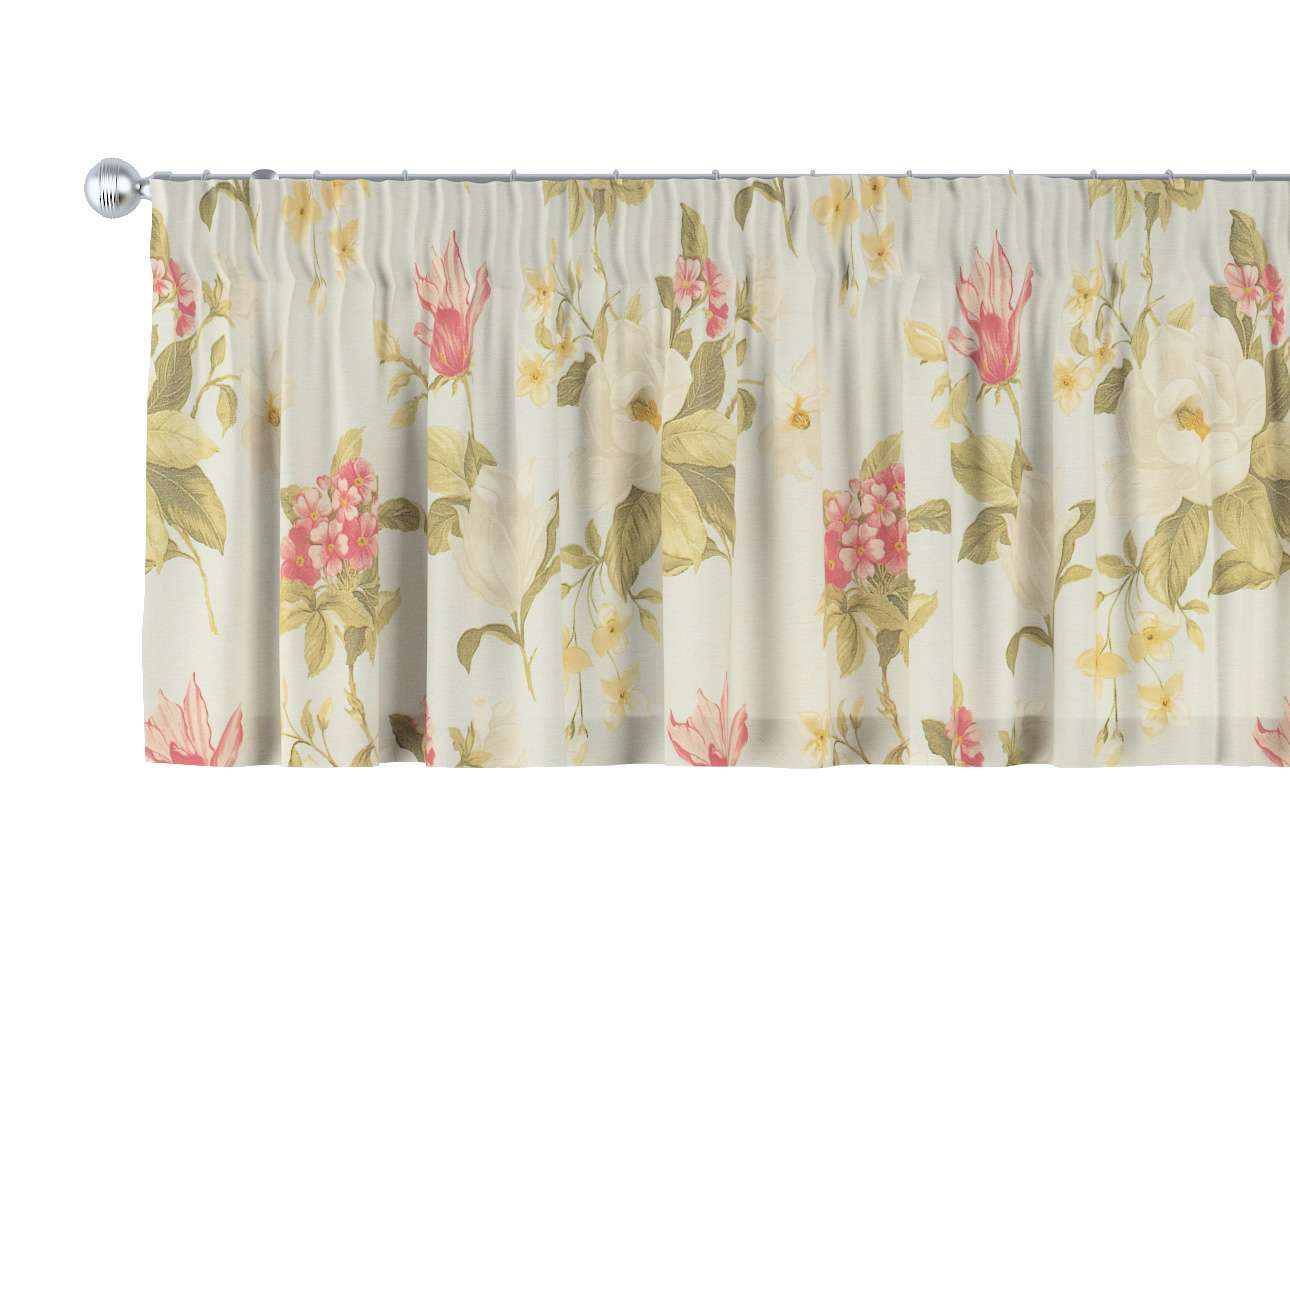 Pencil pleat pelmet 130 × 40 cm (51 × 16 inch) in collection Londres, fabric: 123-65